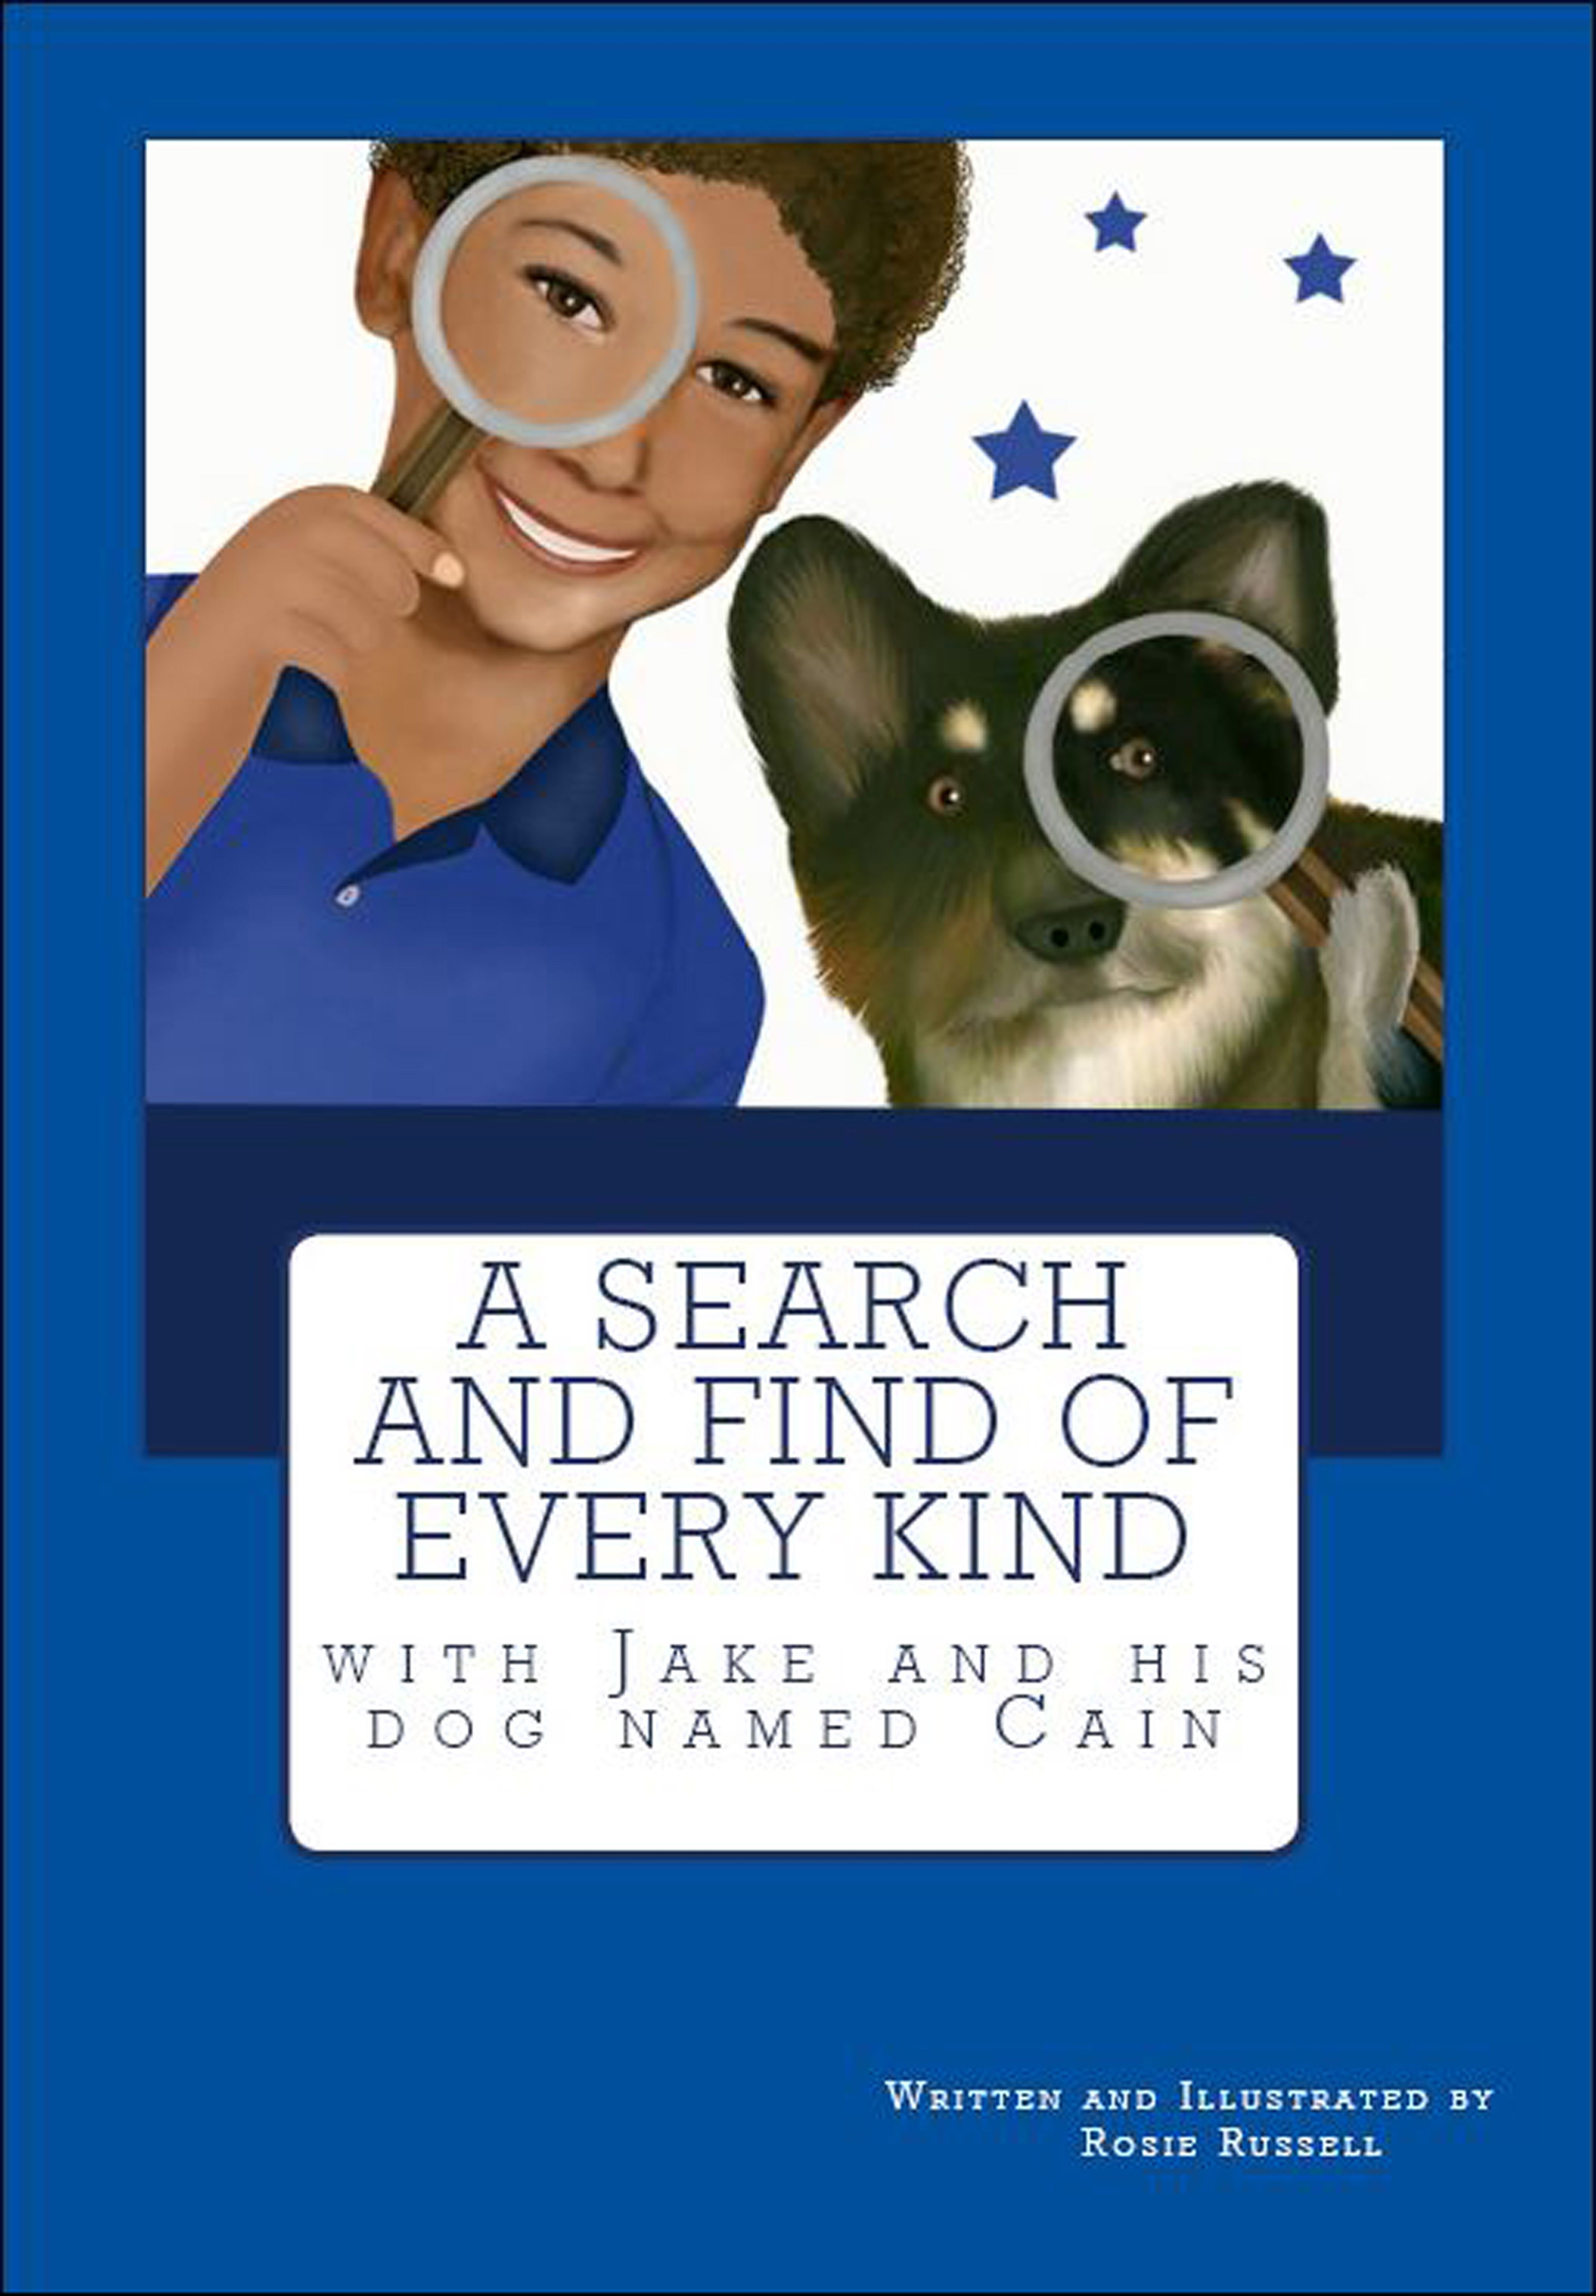 Barnes and noble review pop book dog names search